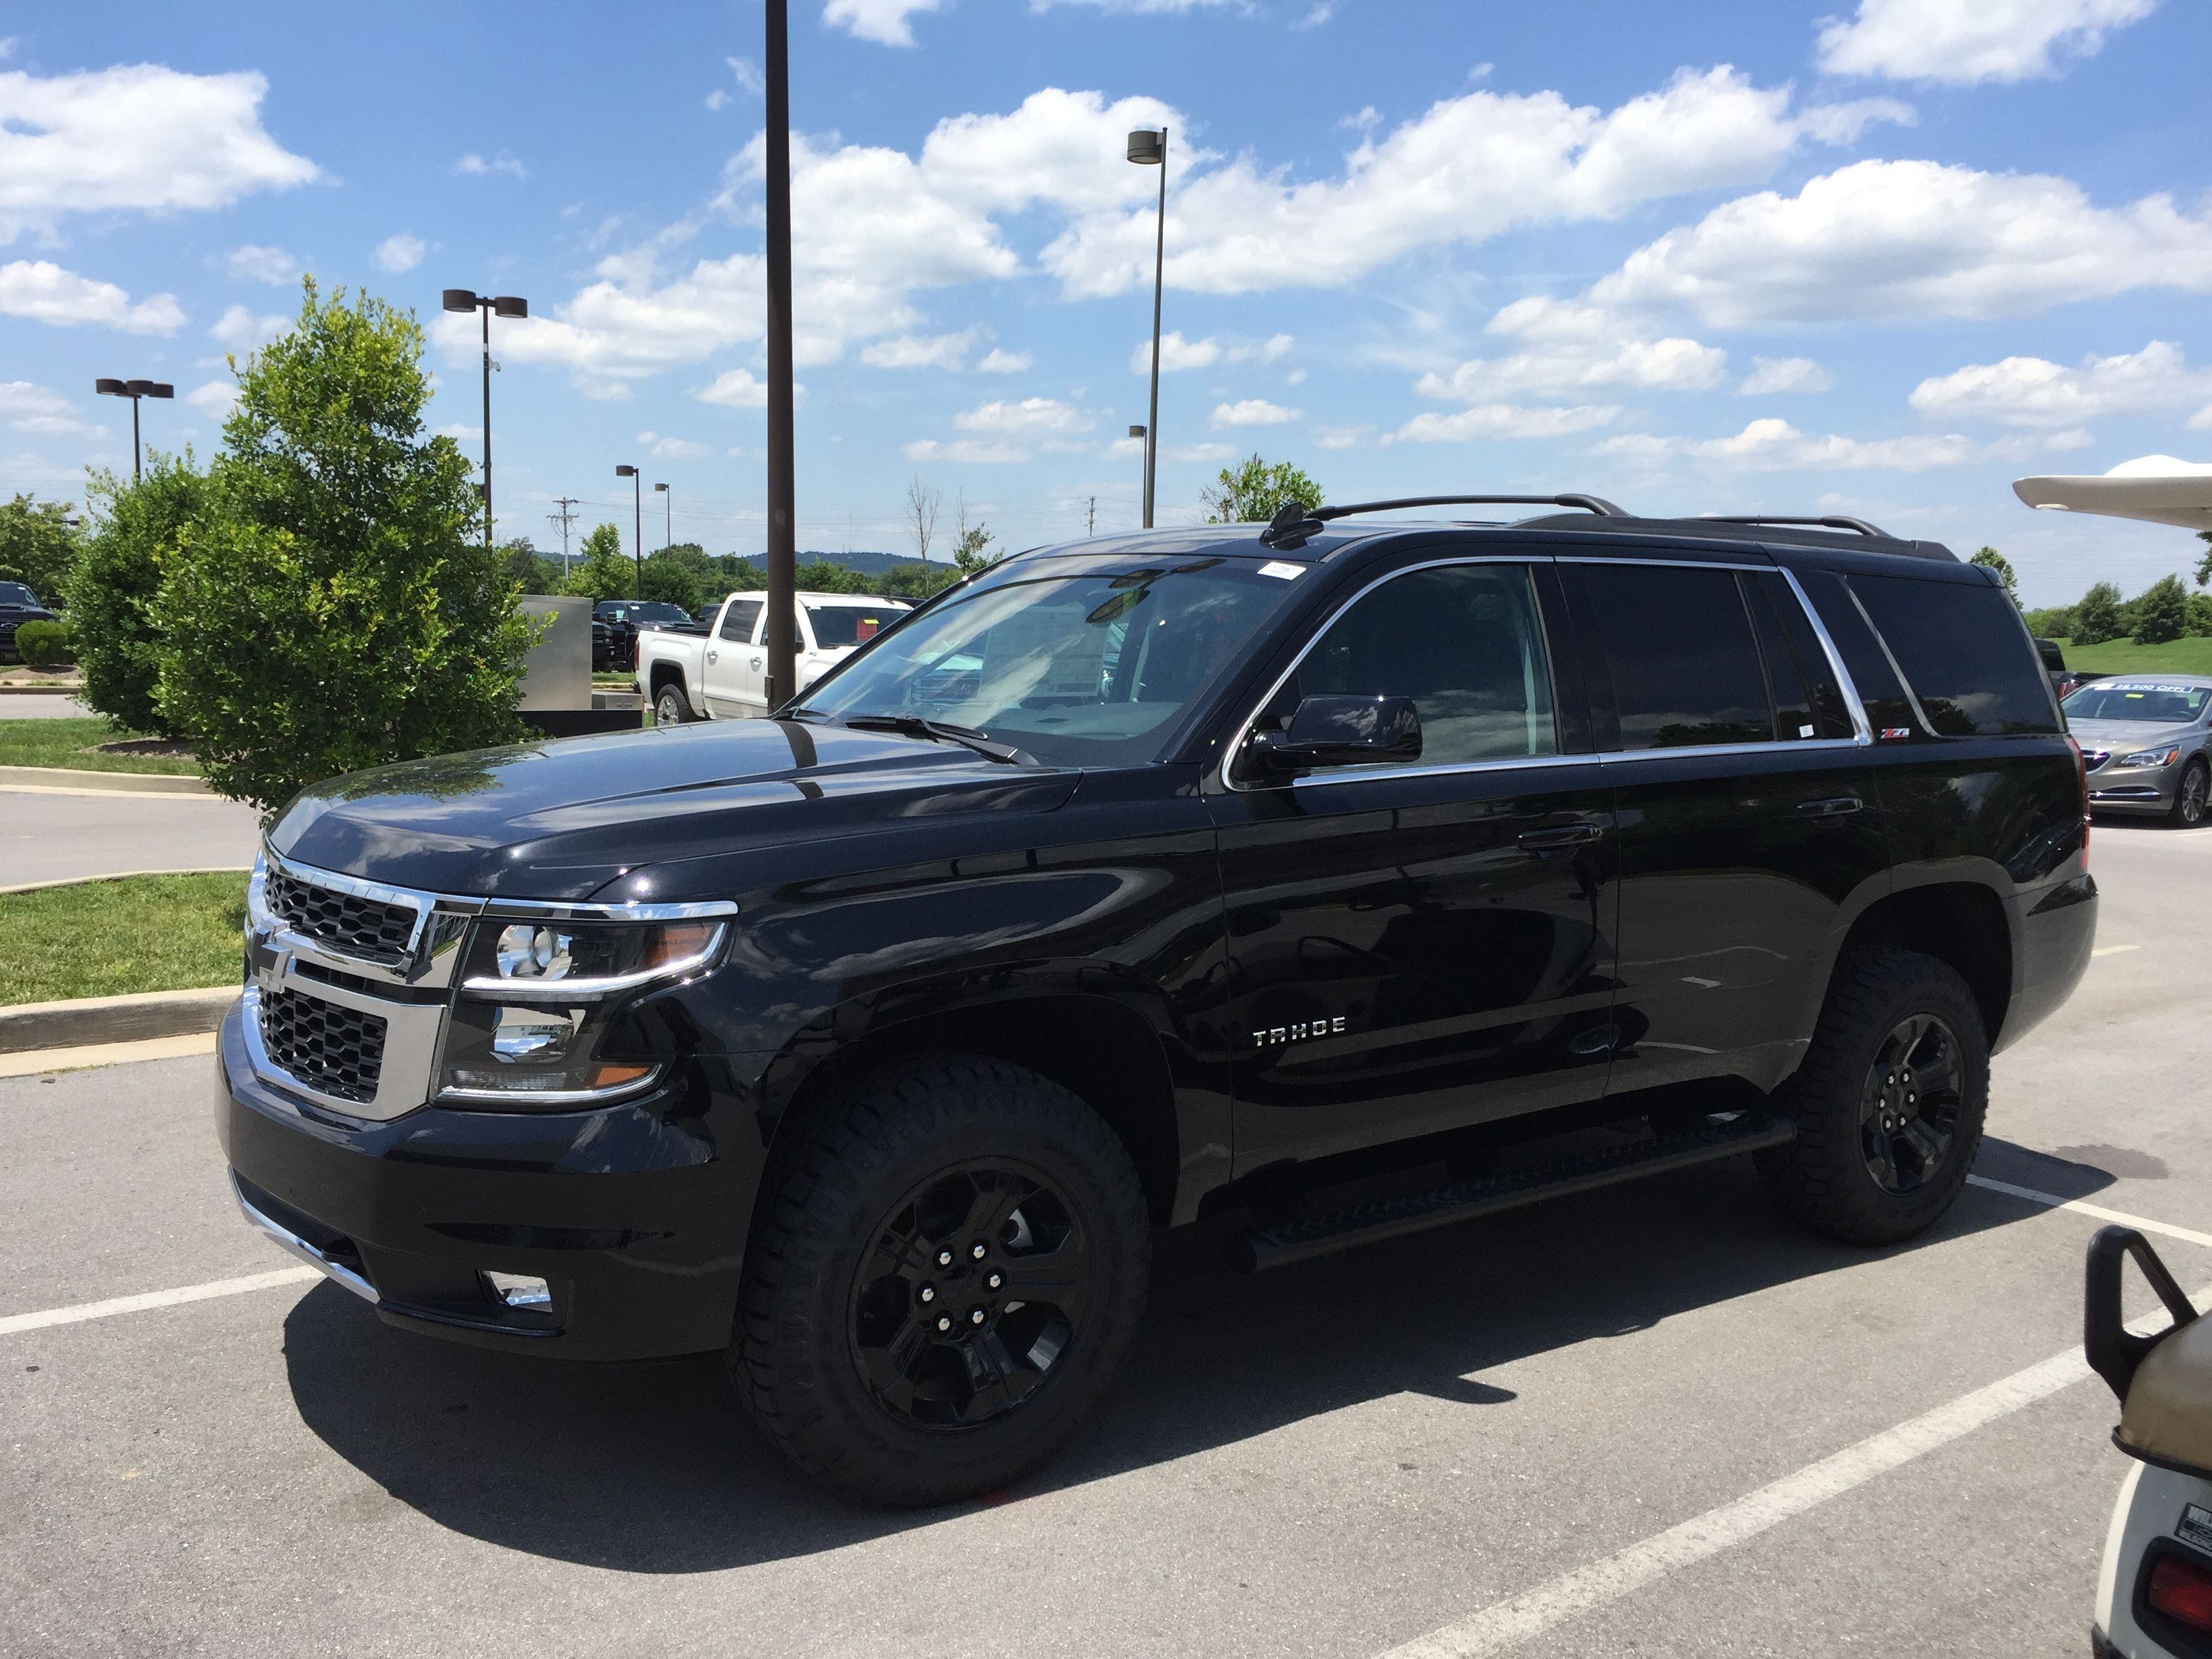 New 2019 Chevrolet Tahoe Z71 First Drive | Chevrolet tahoe ...